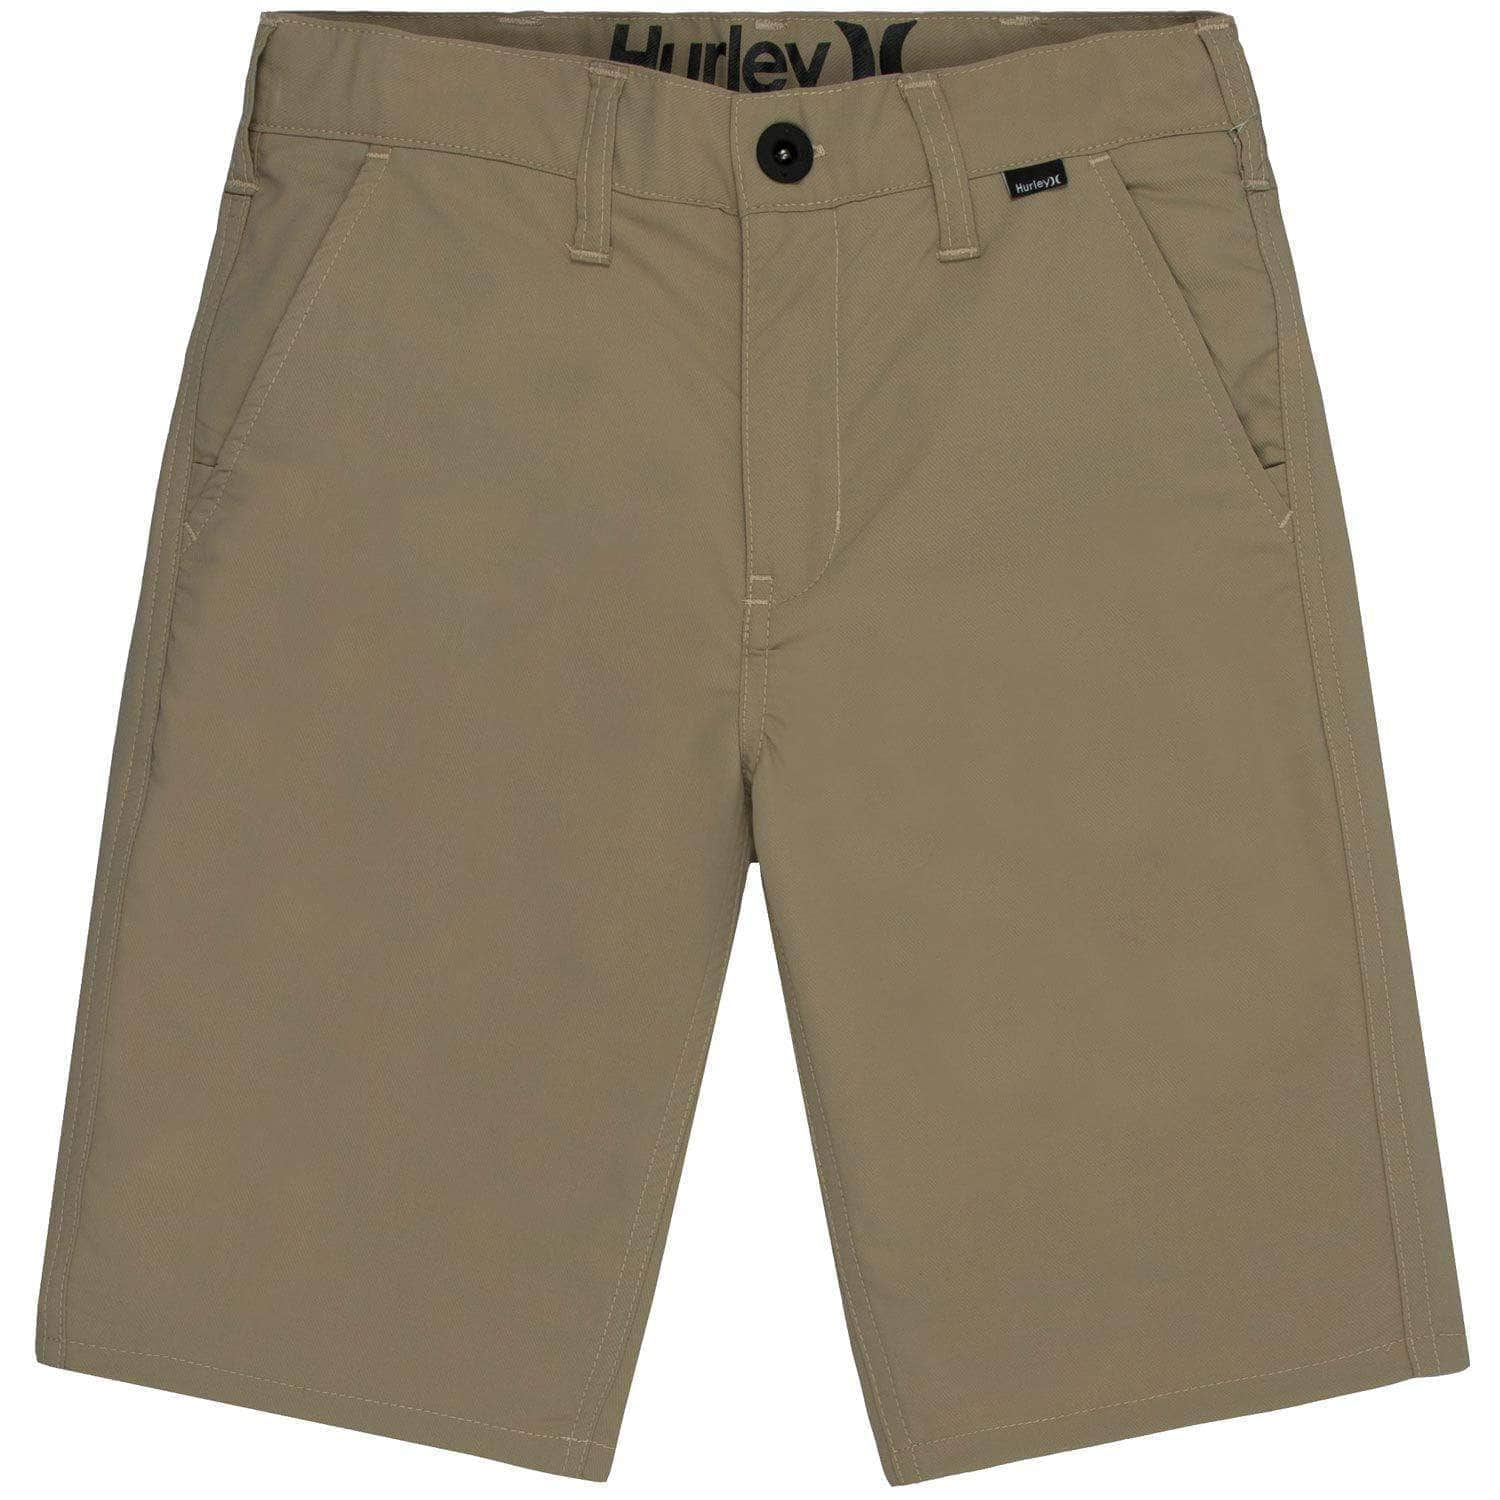 Hurley Boys Dri-Fit Chino Shorts Khaki